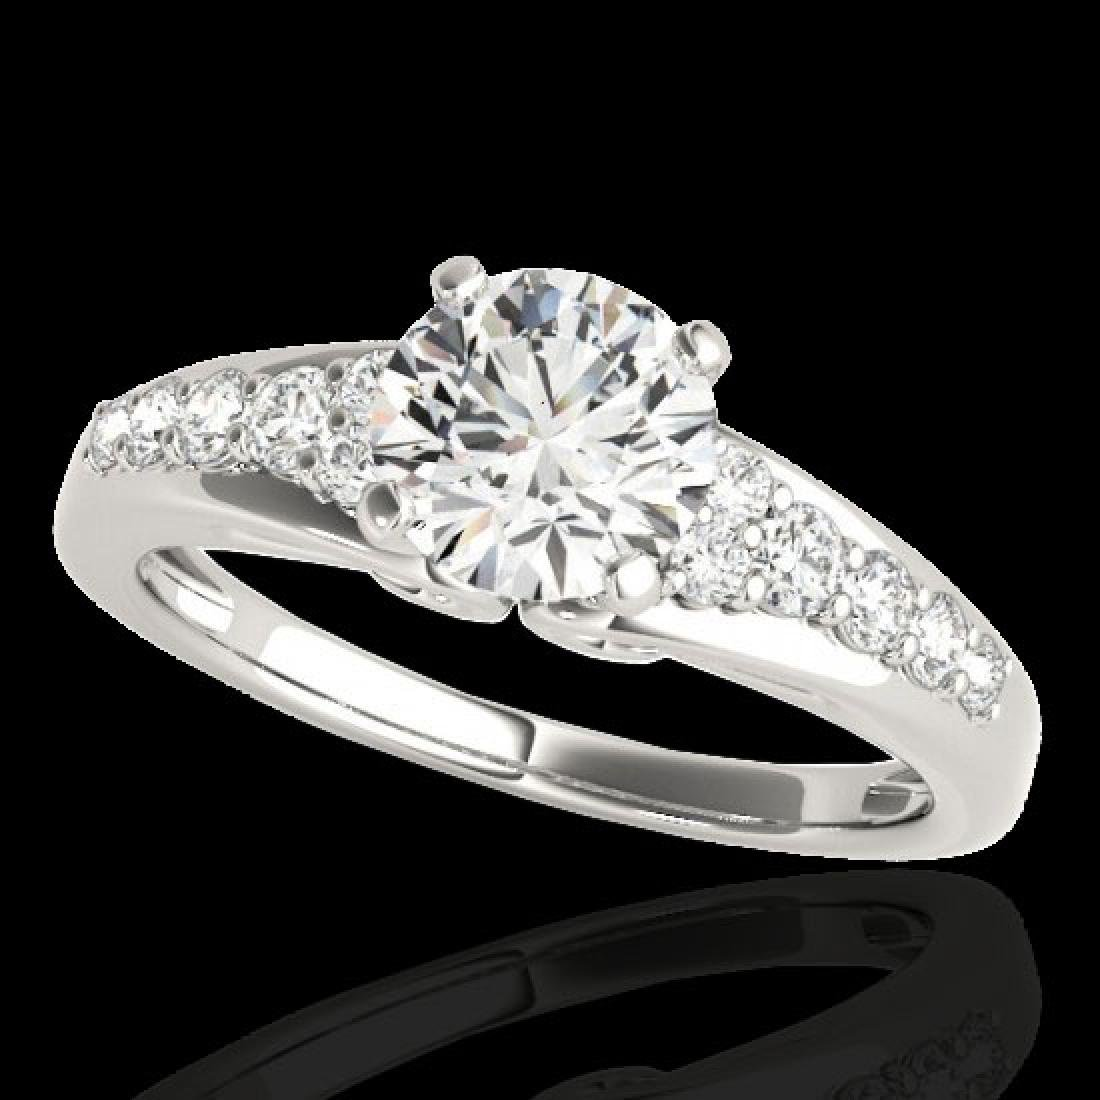 1.4 CTW H-SI/I Certified Diamond Solitaire Ring 10K